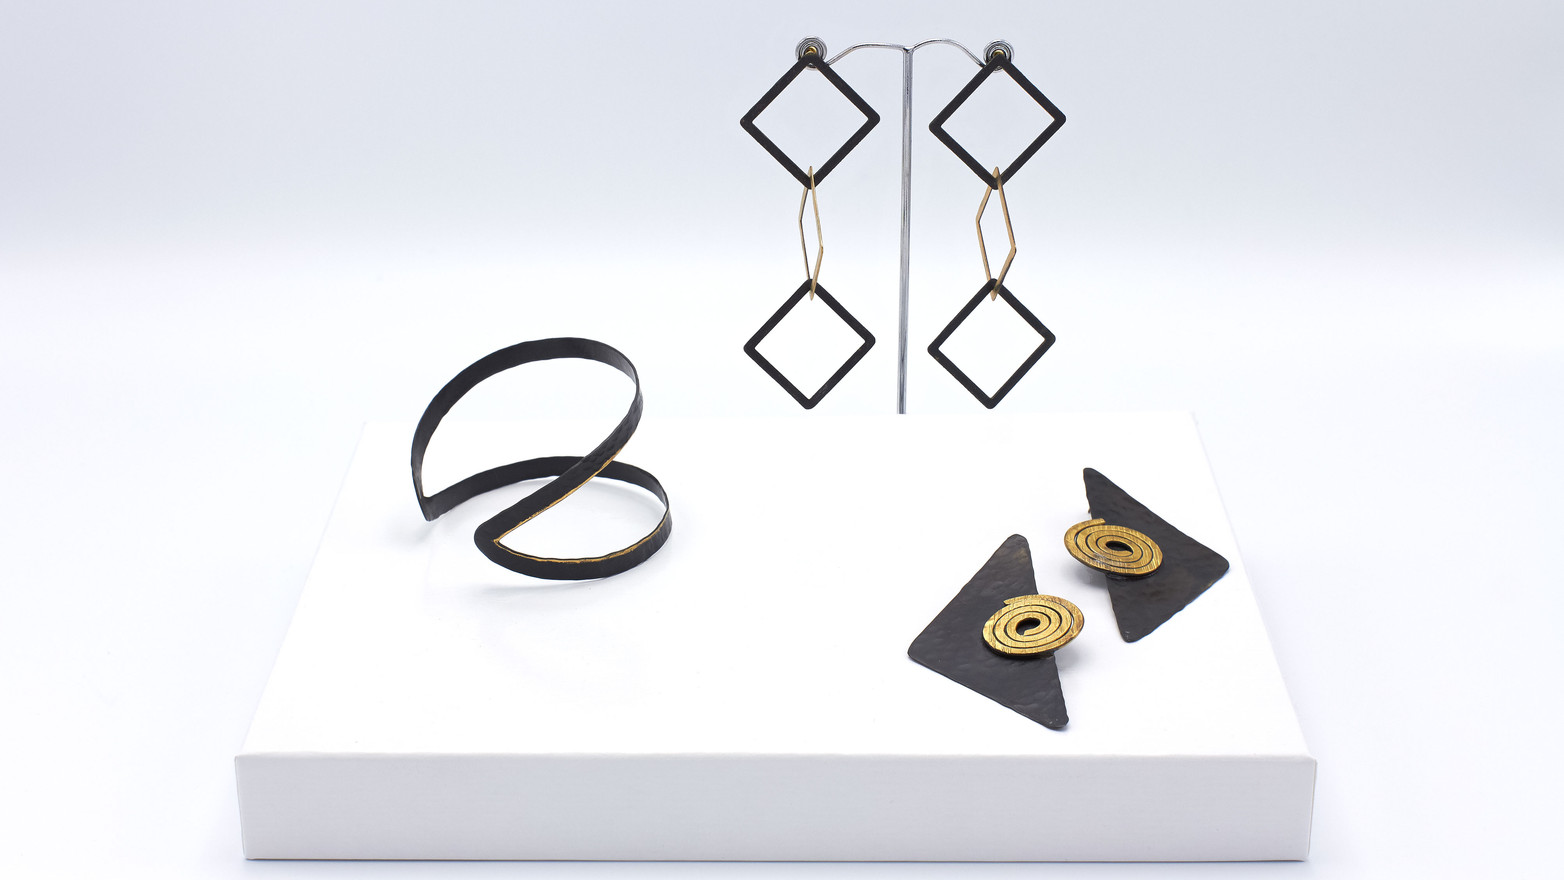 Jewelery from the Sélection Actuelle with jewelery from the spring collection with a bracelet, and two earrings made of dark bronze with gold-plated parts, in particular two gold-plated spirals